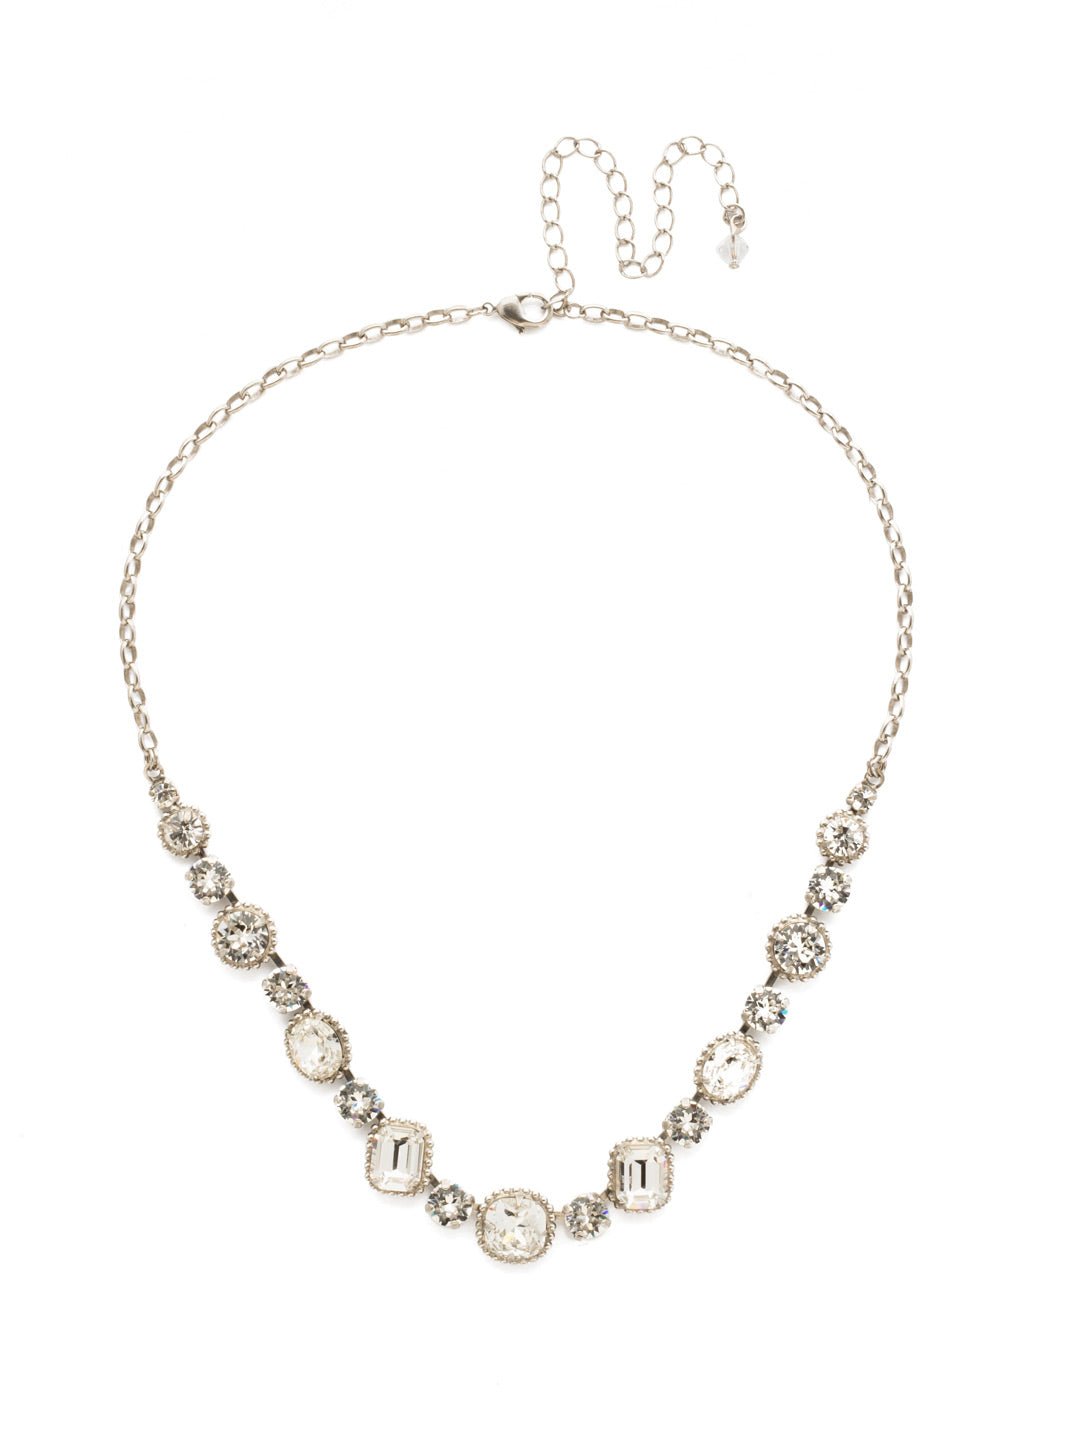 Embellished Elegance Necklace - NDK14ASCRY